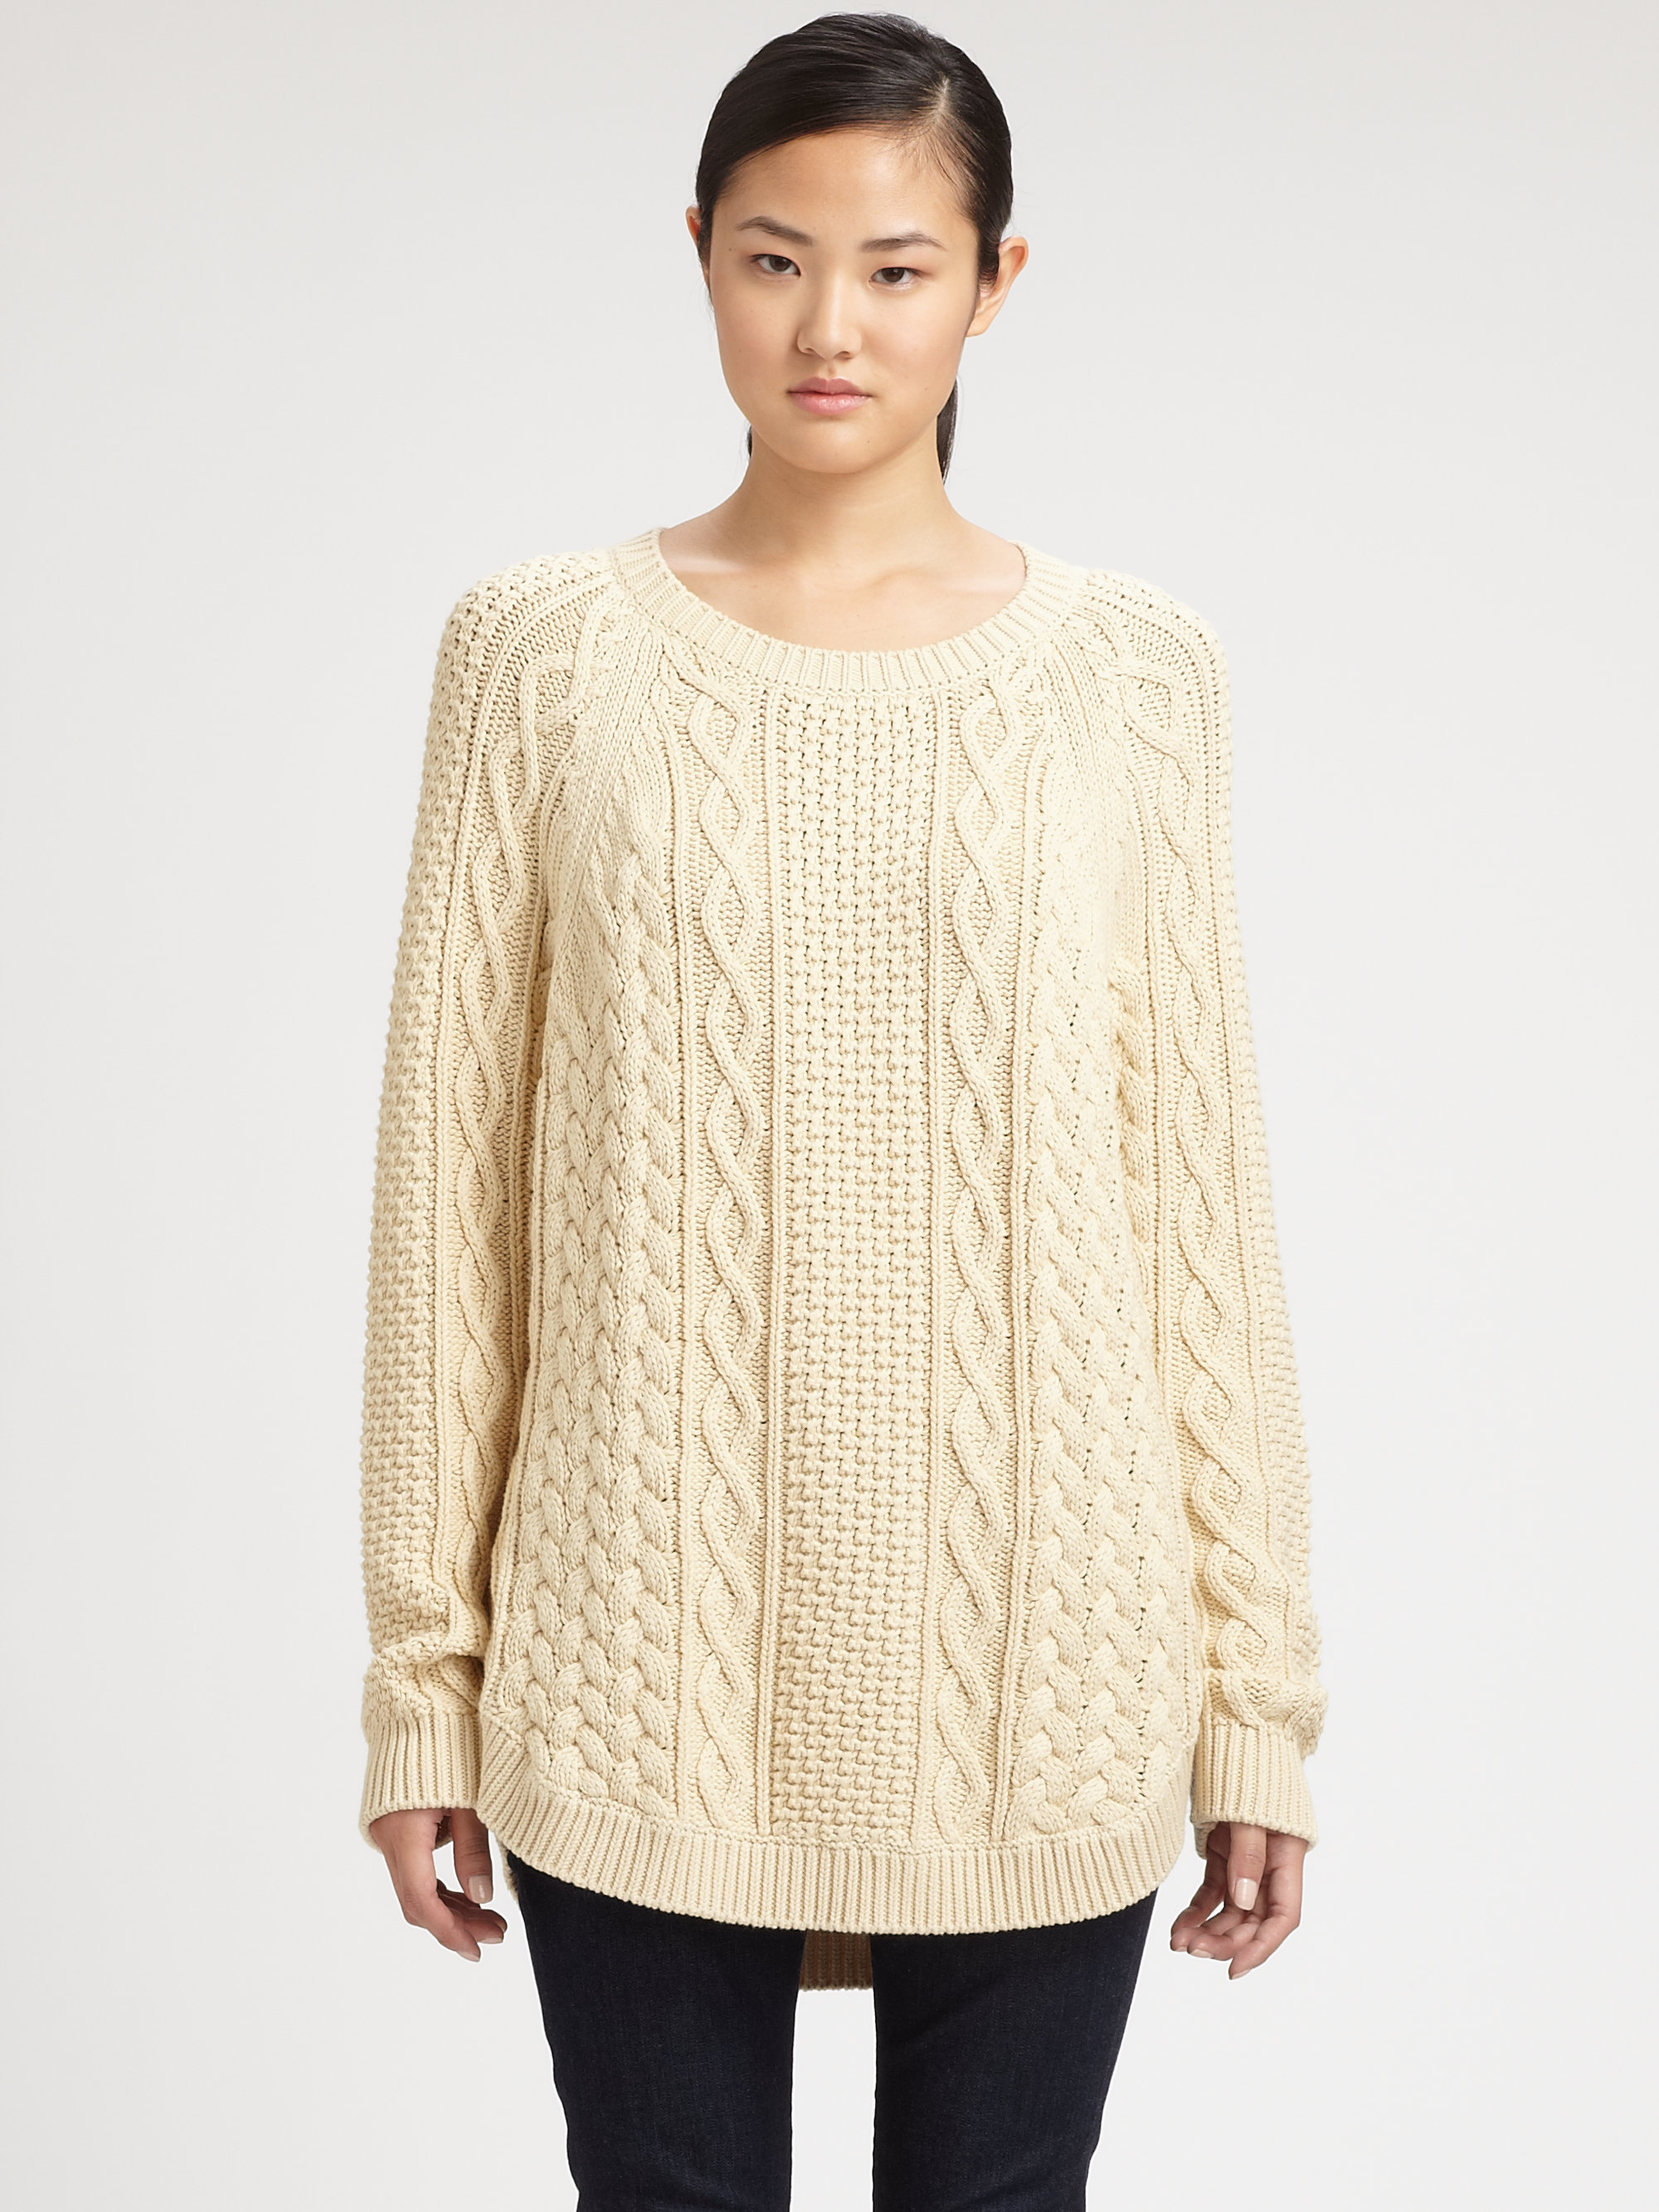 Michael michael kors Fisherman Cableknit Sweater in Natural | Lyst